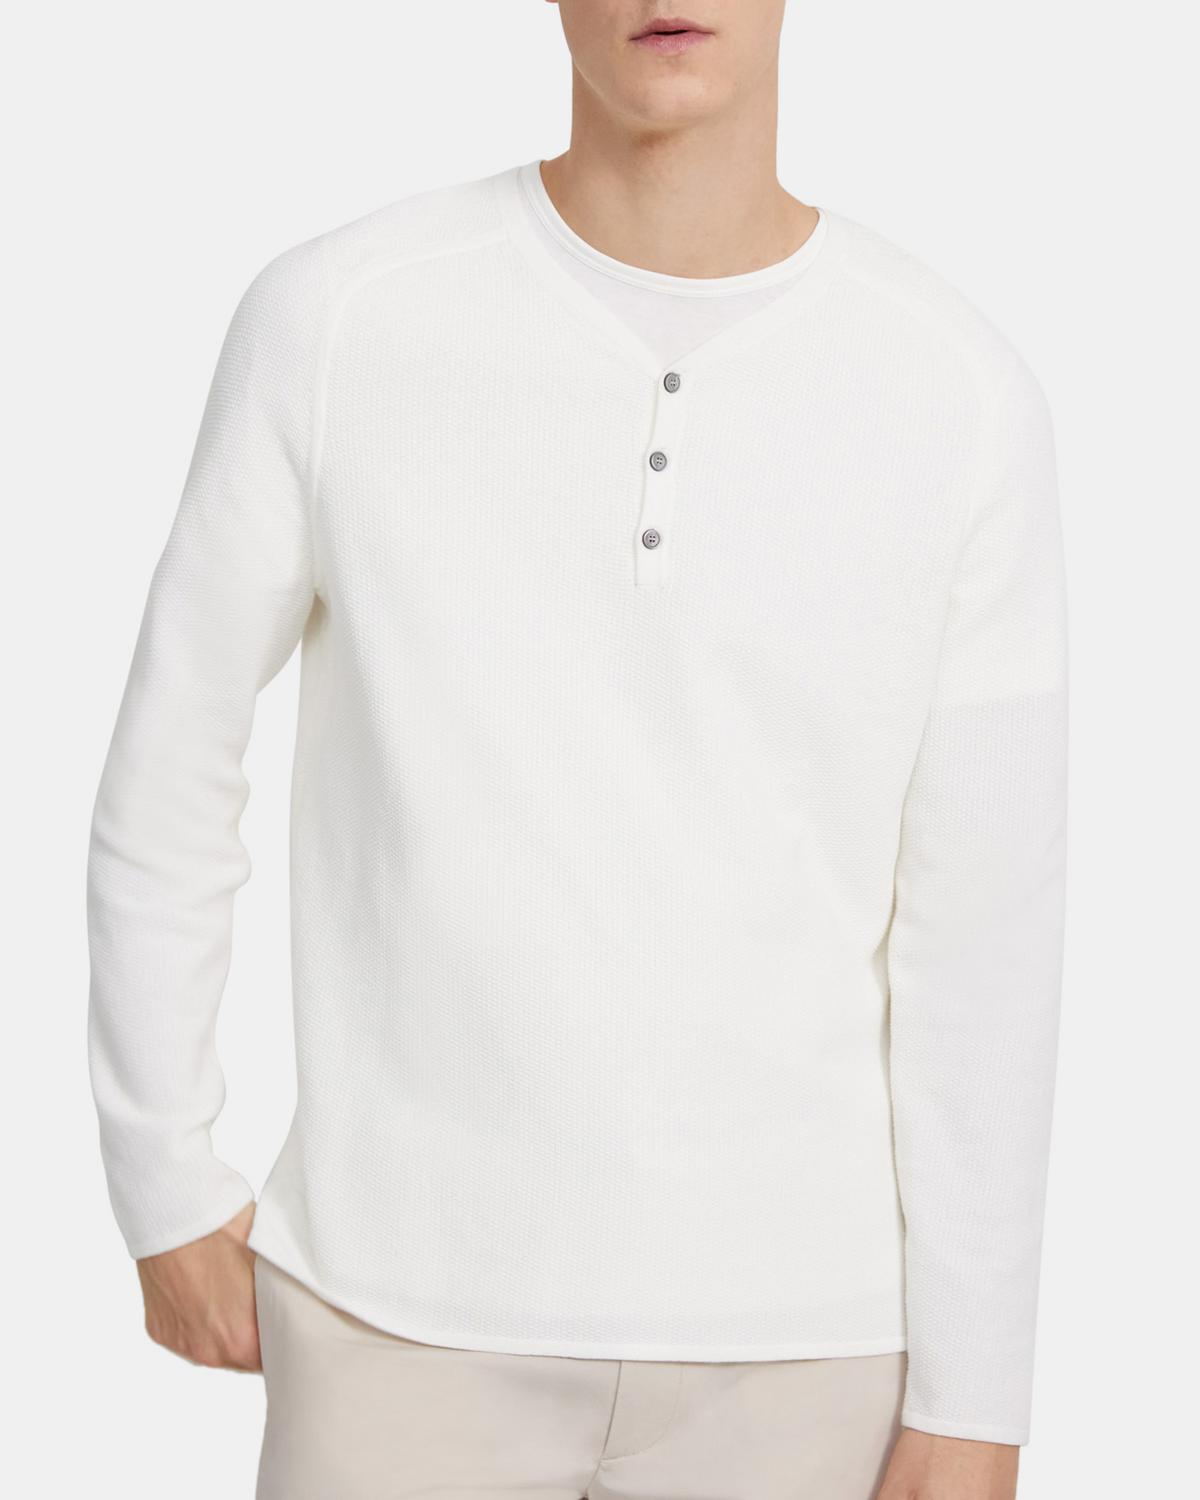 Henley Shirt in Sleek Cotton